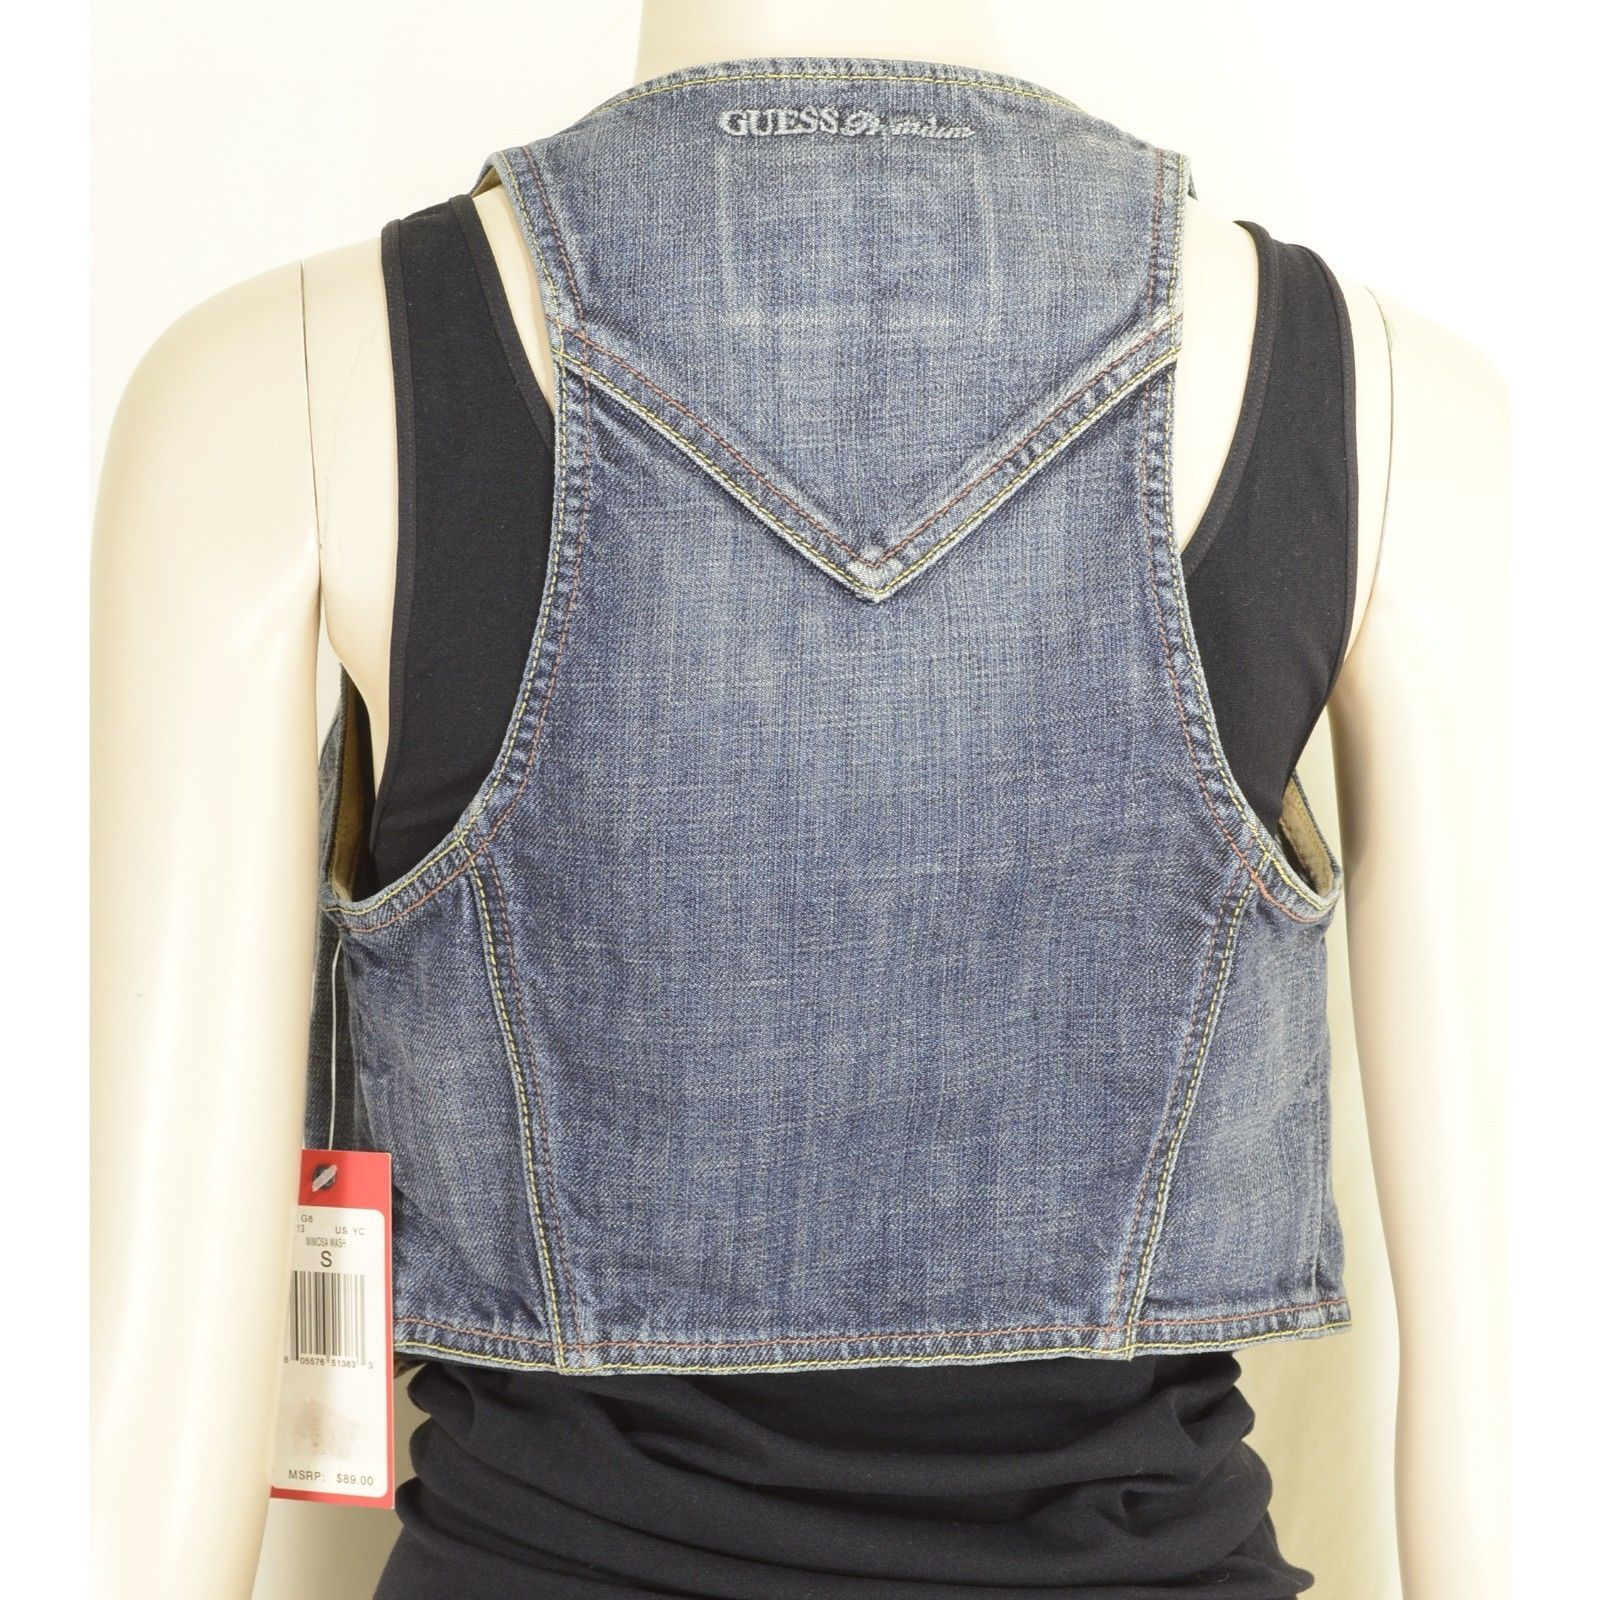 1 Guess vest SZ S NWT denim fitted cropped racerback waistcoat style USA